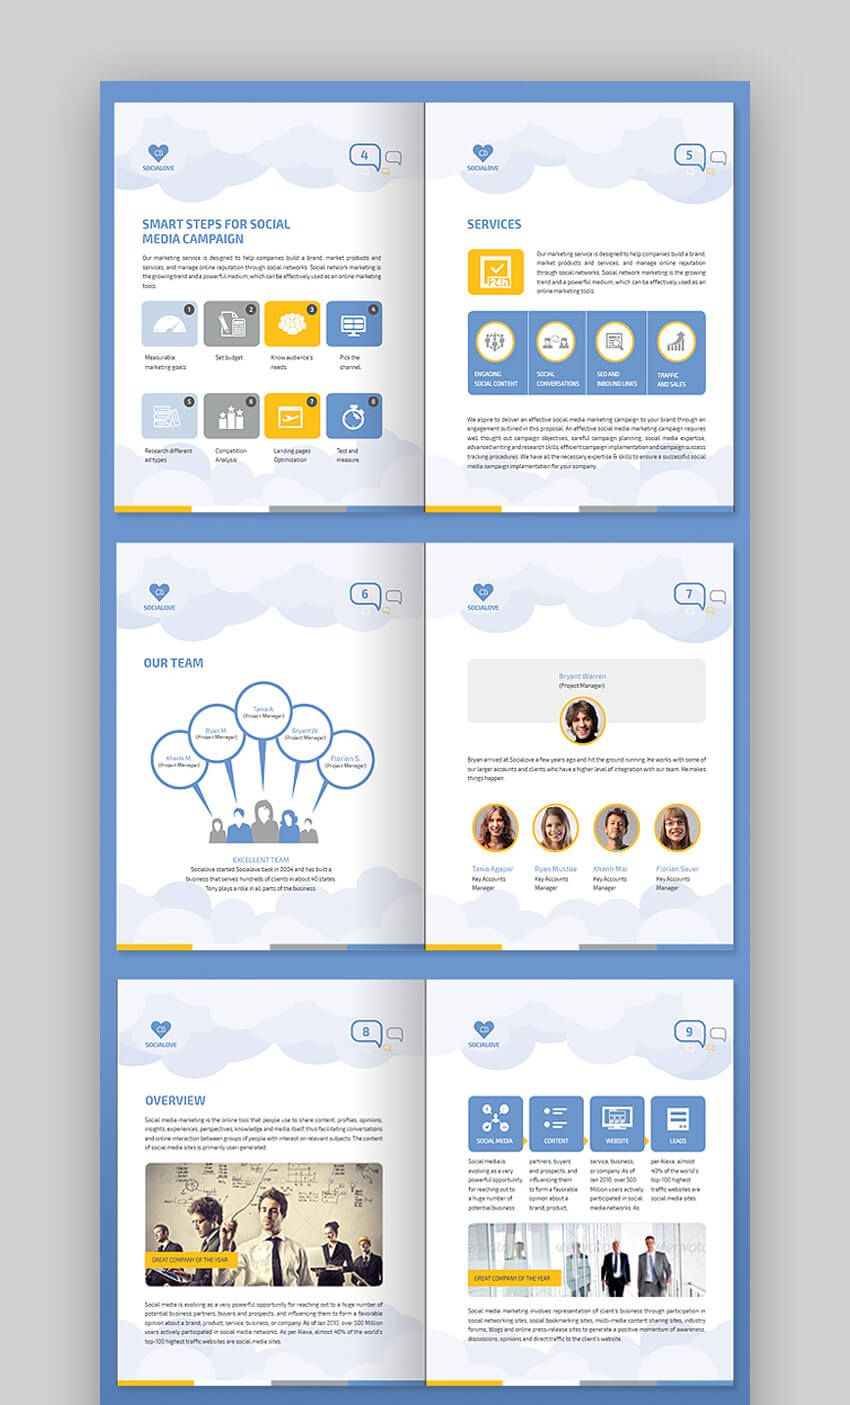 009 Imposing Social Media Proposal Template Image  Plan Sample Pdf 2018Full